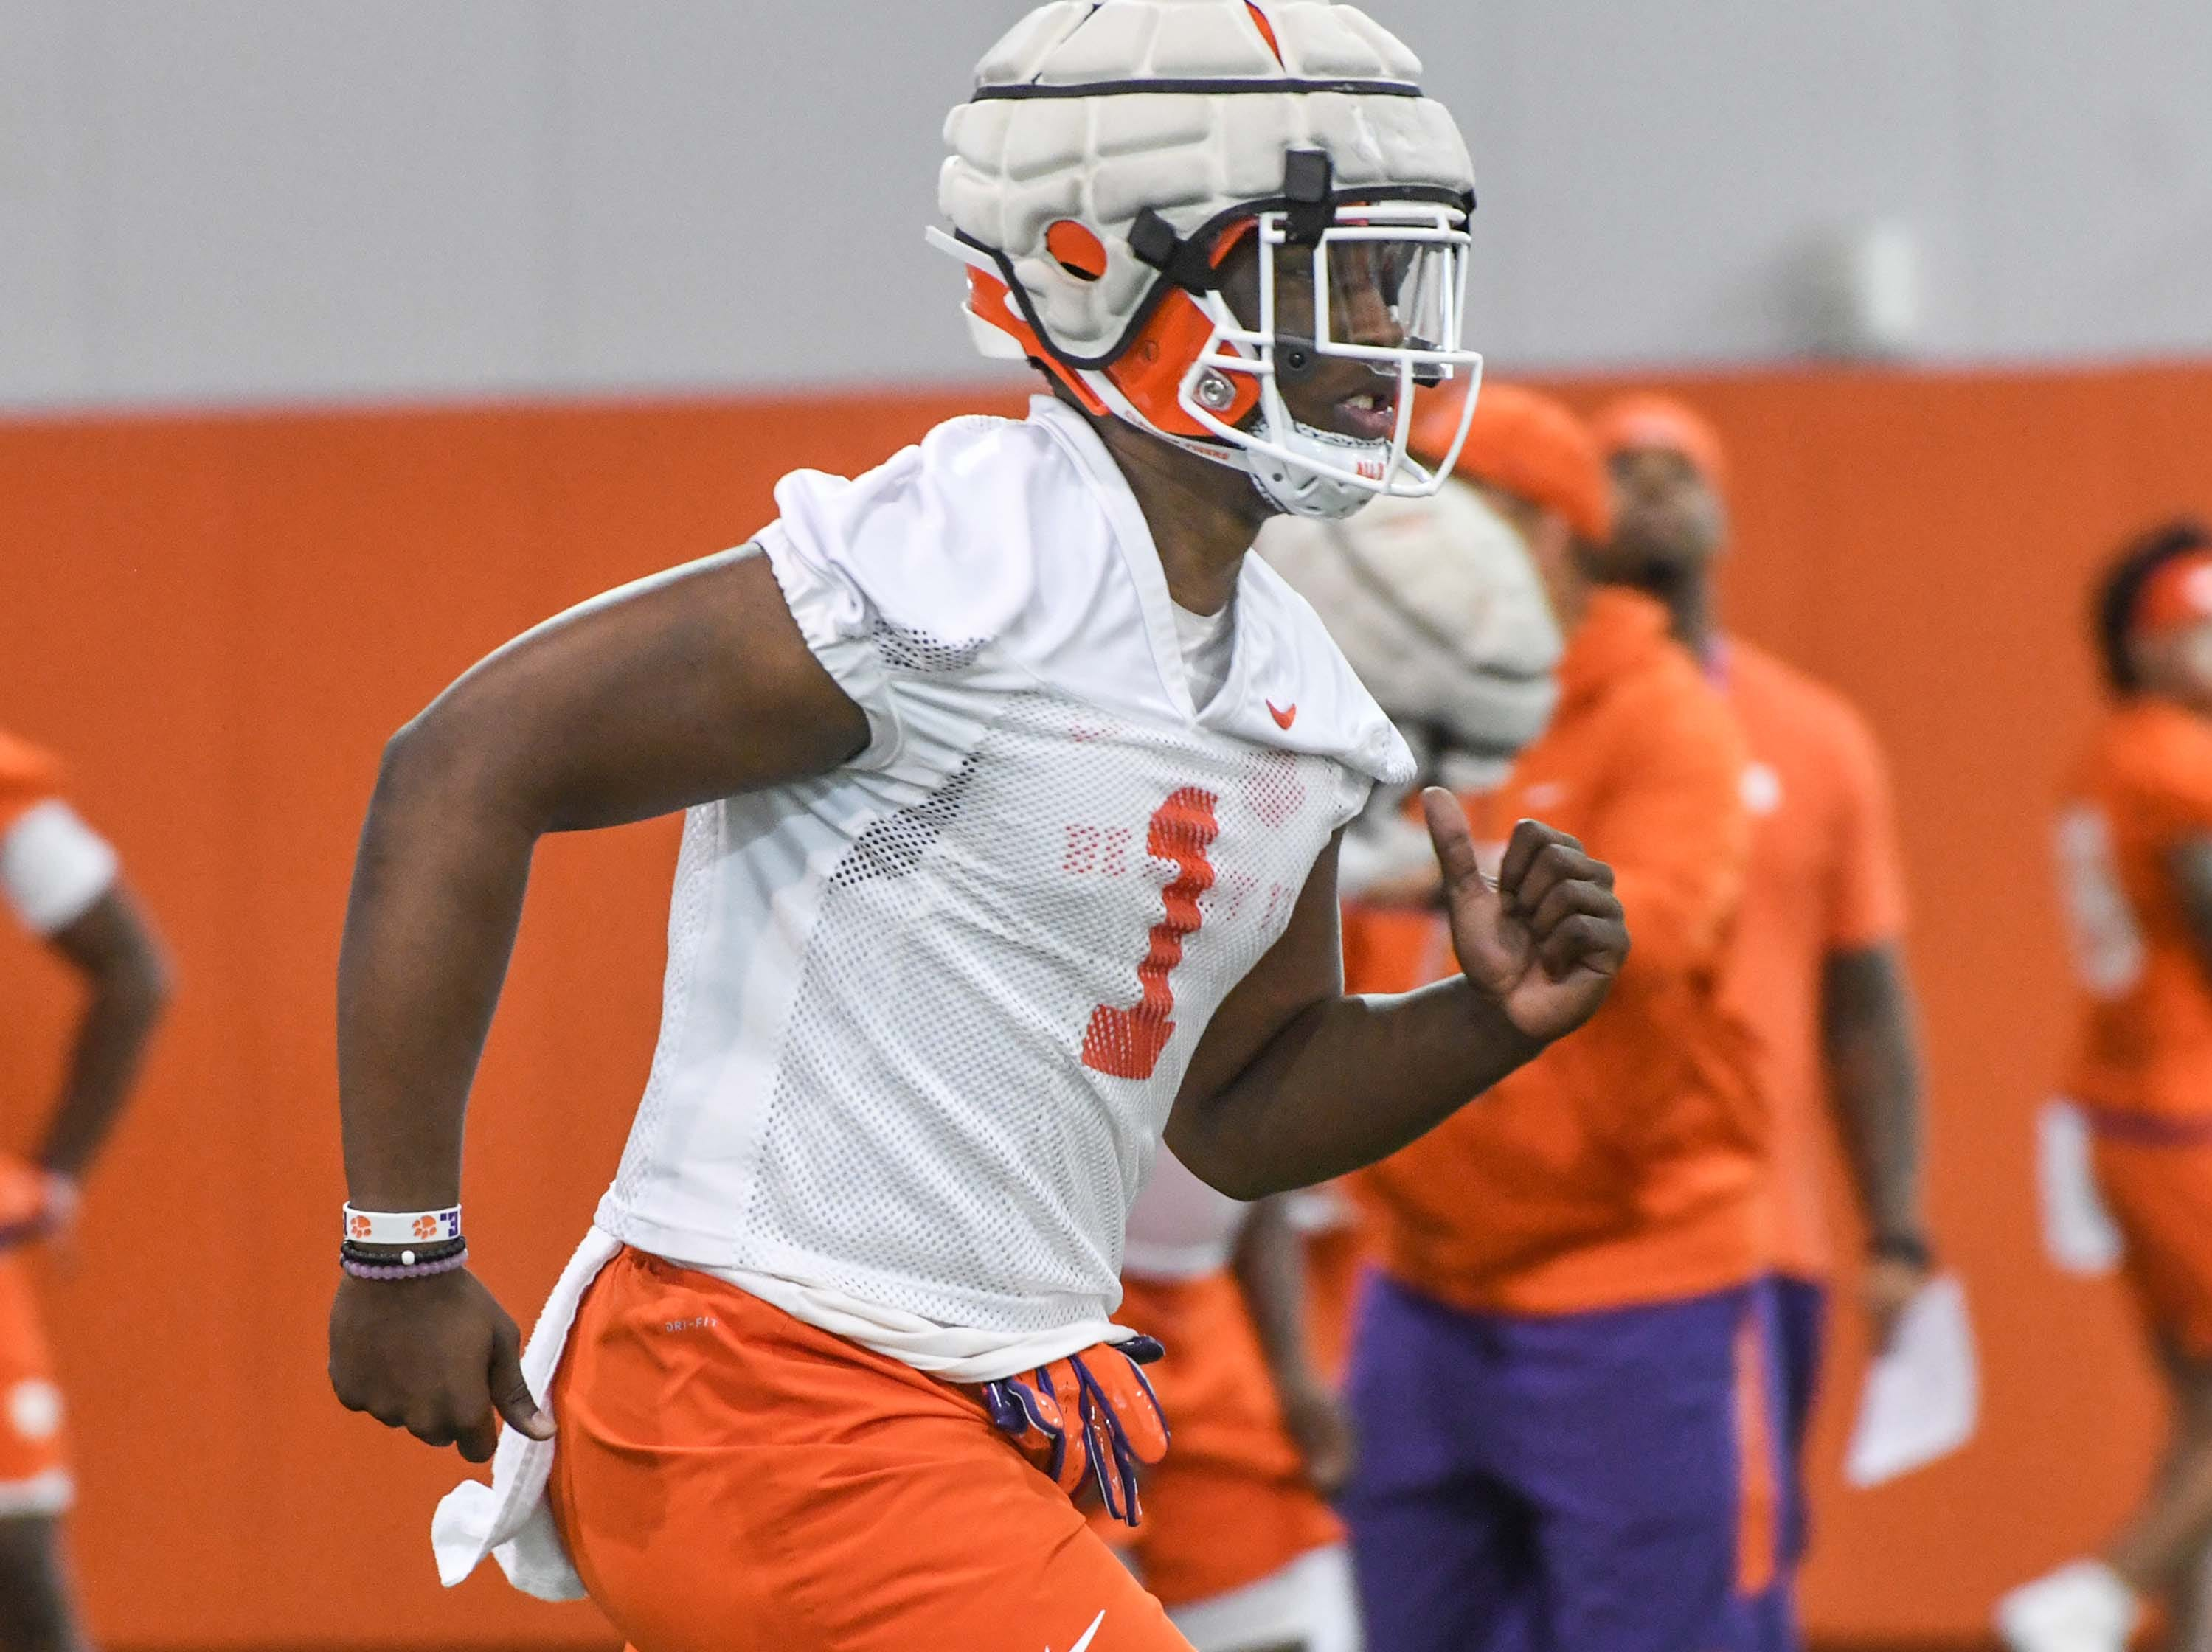 Clemson defensive end K.J. Henry (1) during the first practice at the Clemson Indoor Practice Facility in Clemson Wednesday, February 27, 2019.